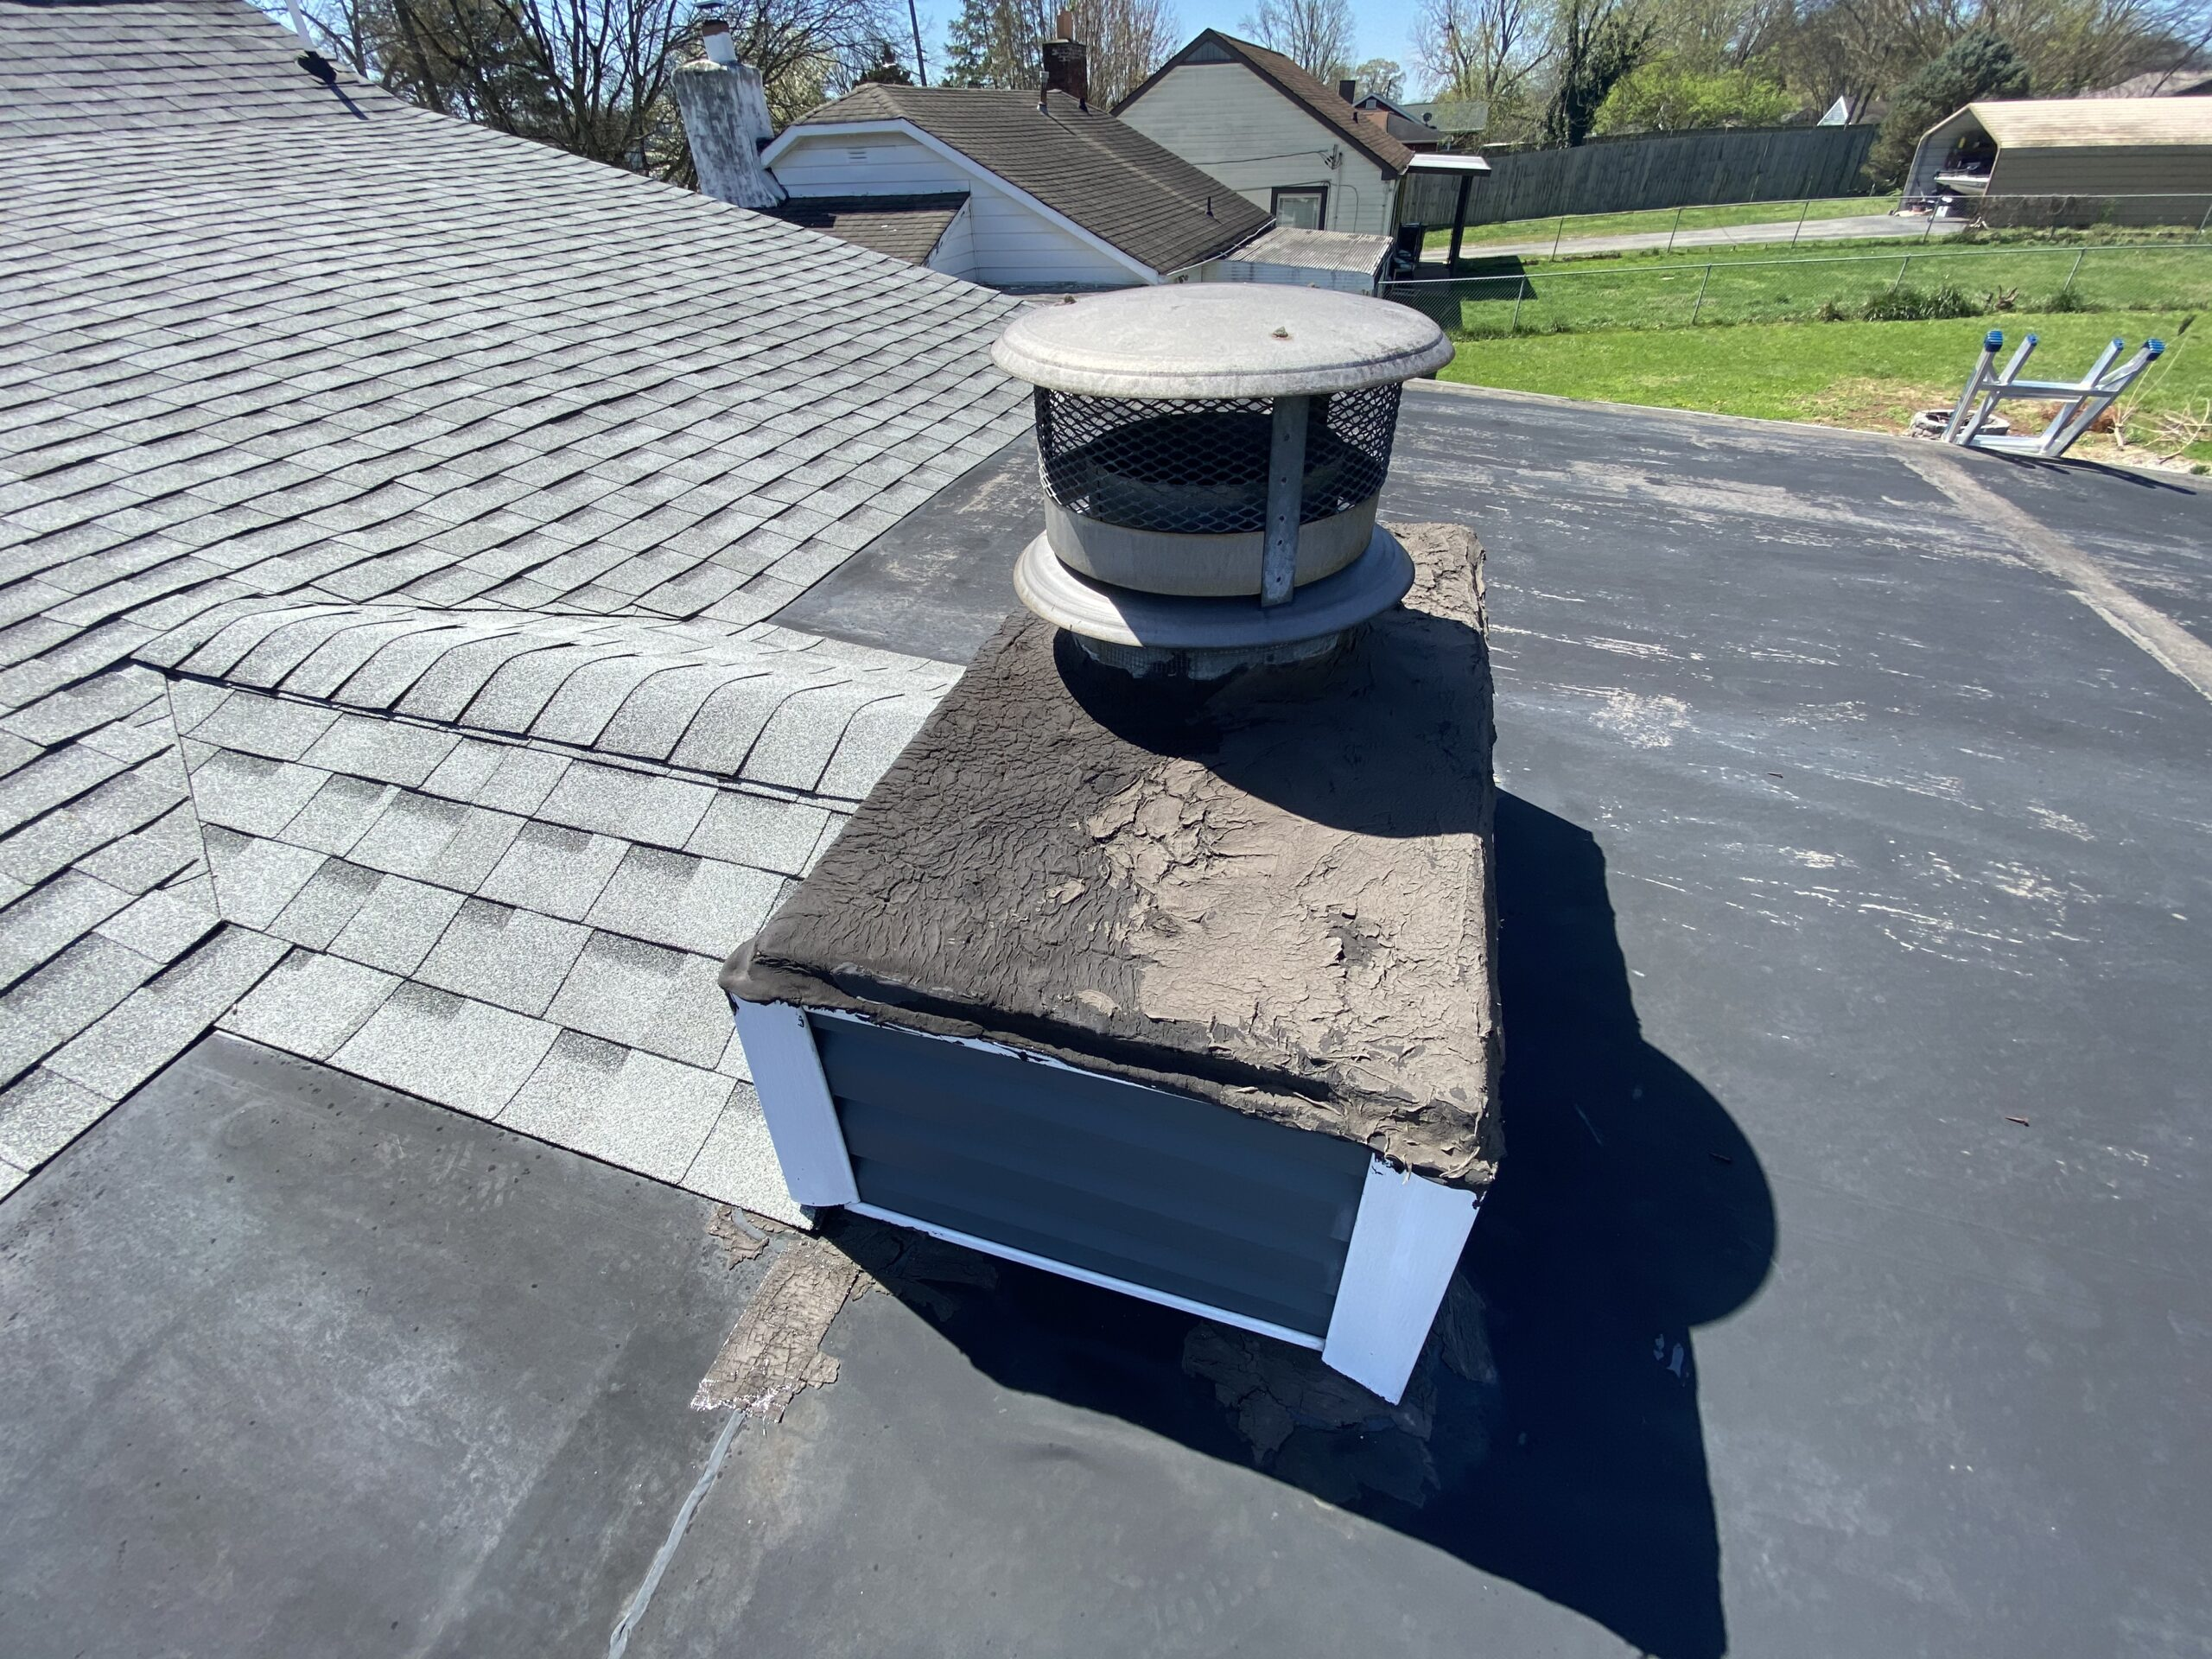 This is a picture of a chimney with cracks that needs to be coated